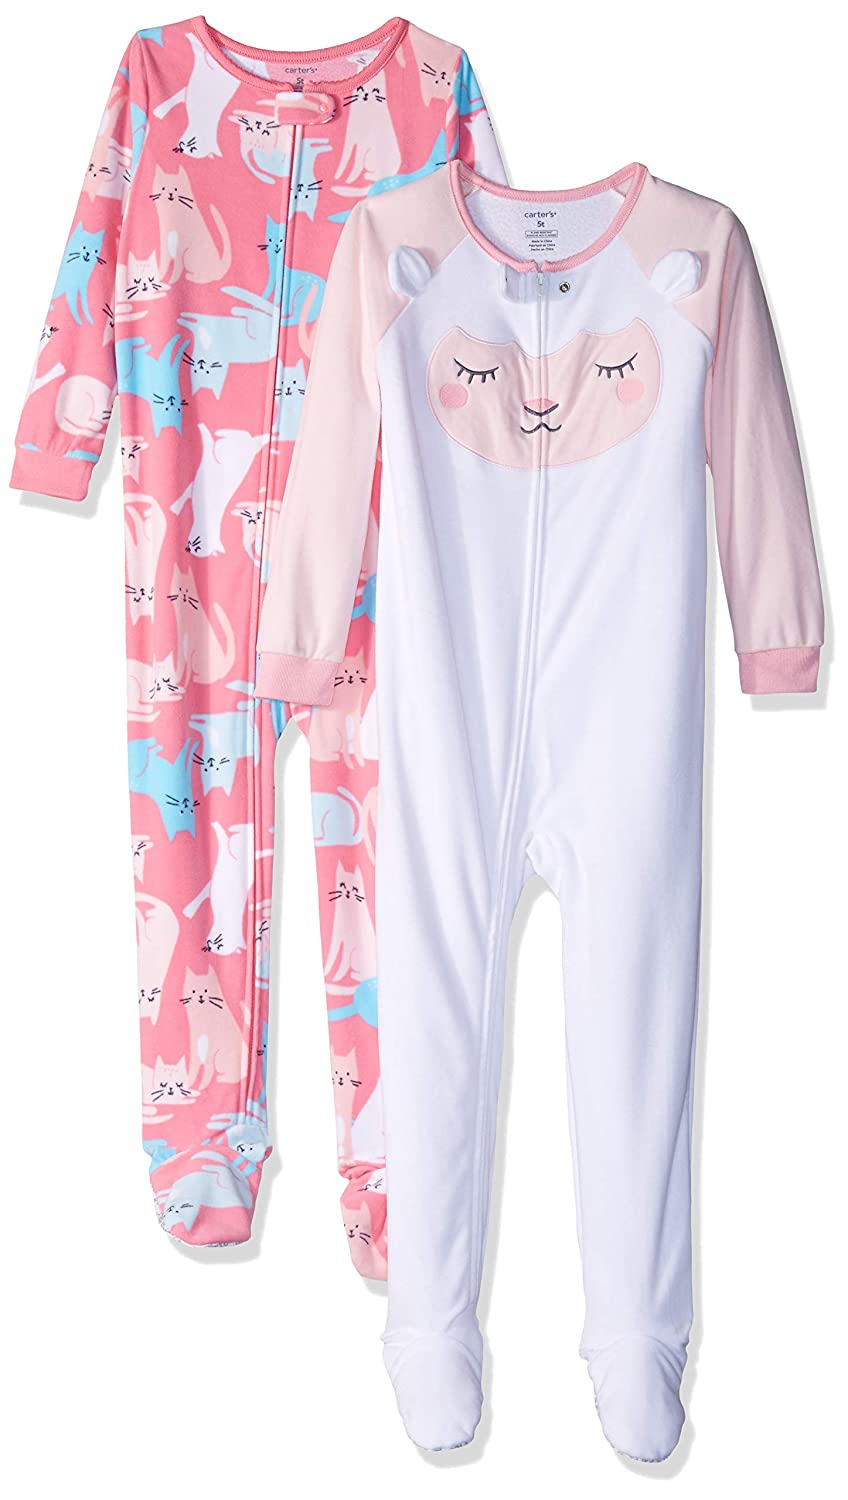 f33519591 Amazon.com: Carter's Baby and Toddler Girls' 2-Pack Fleece Footed Pajamas:  Clothing